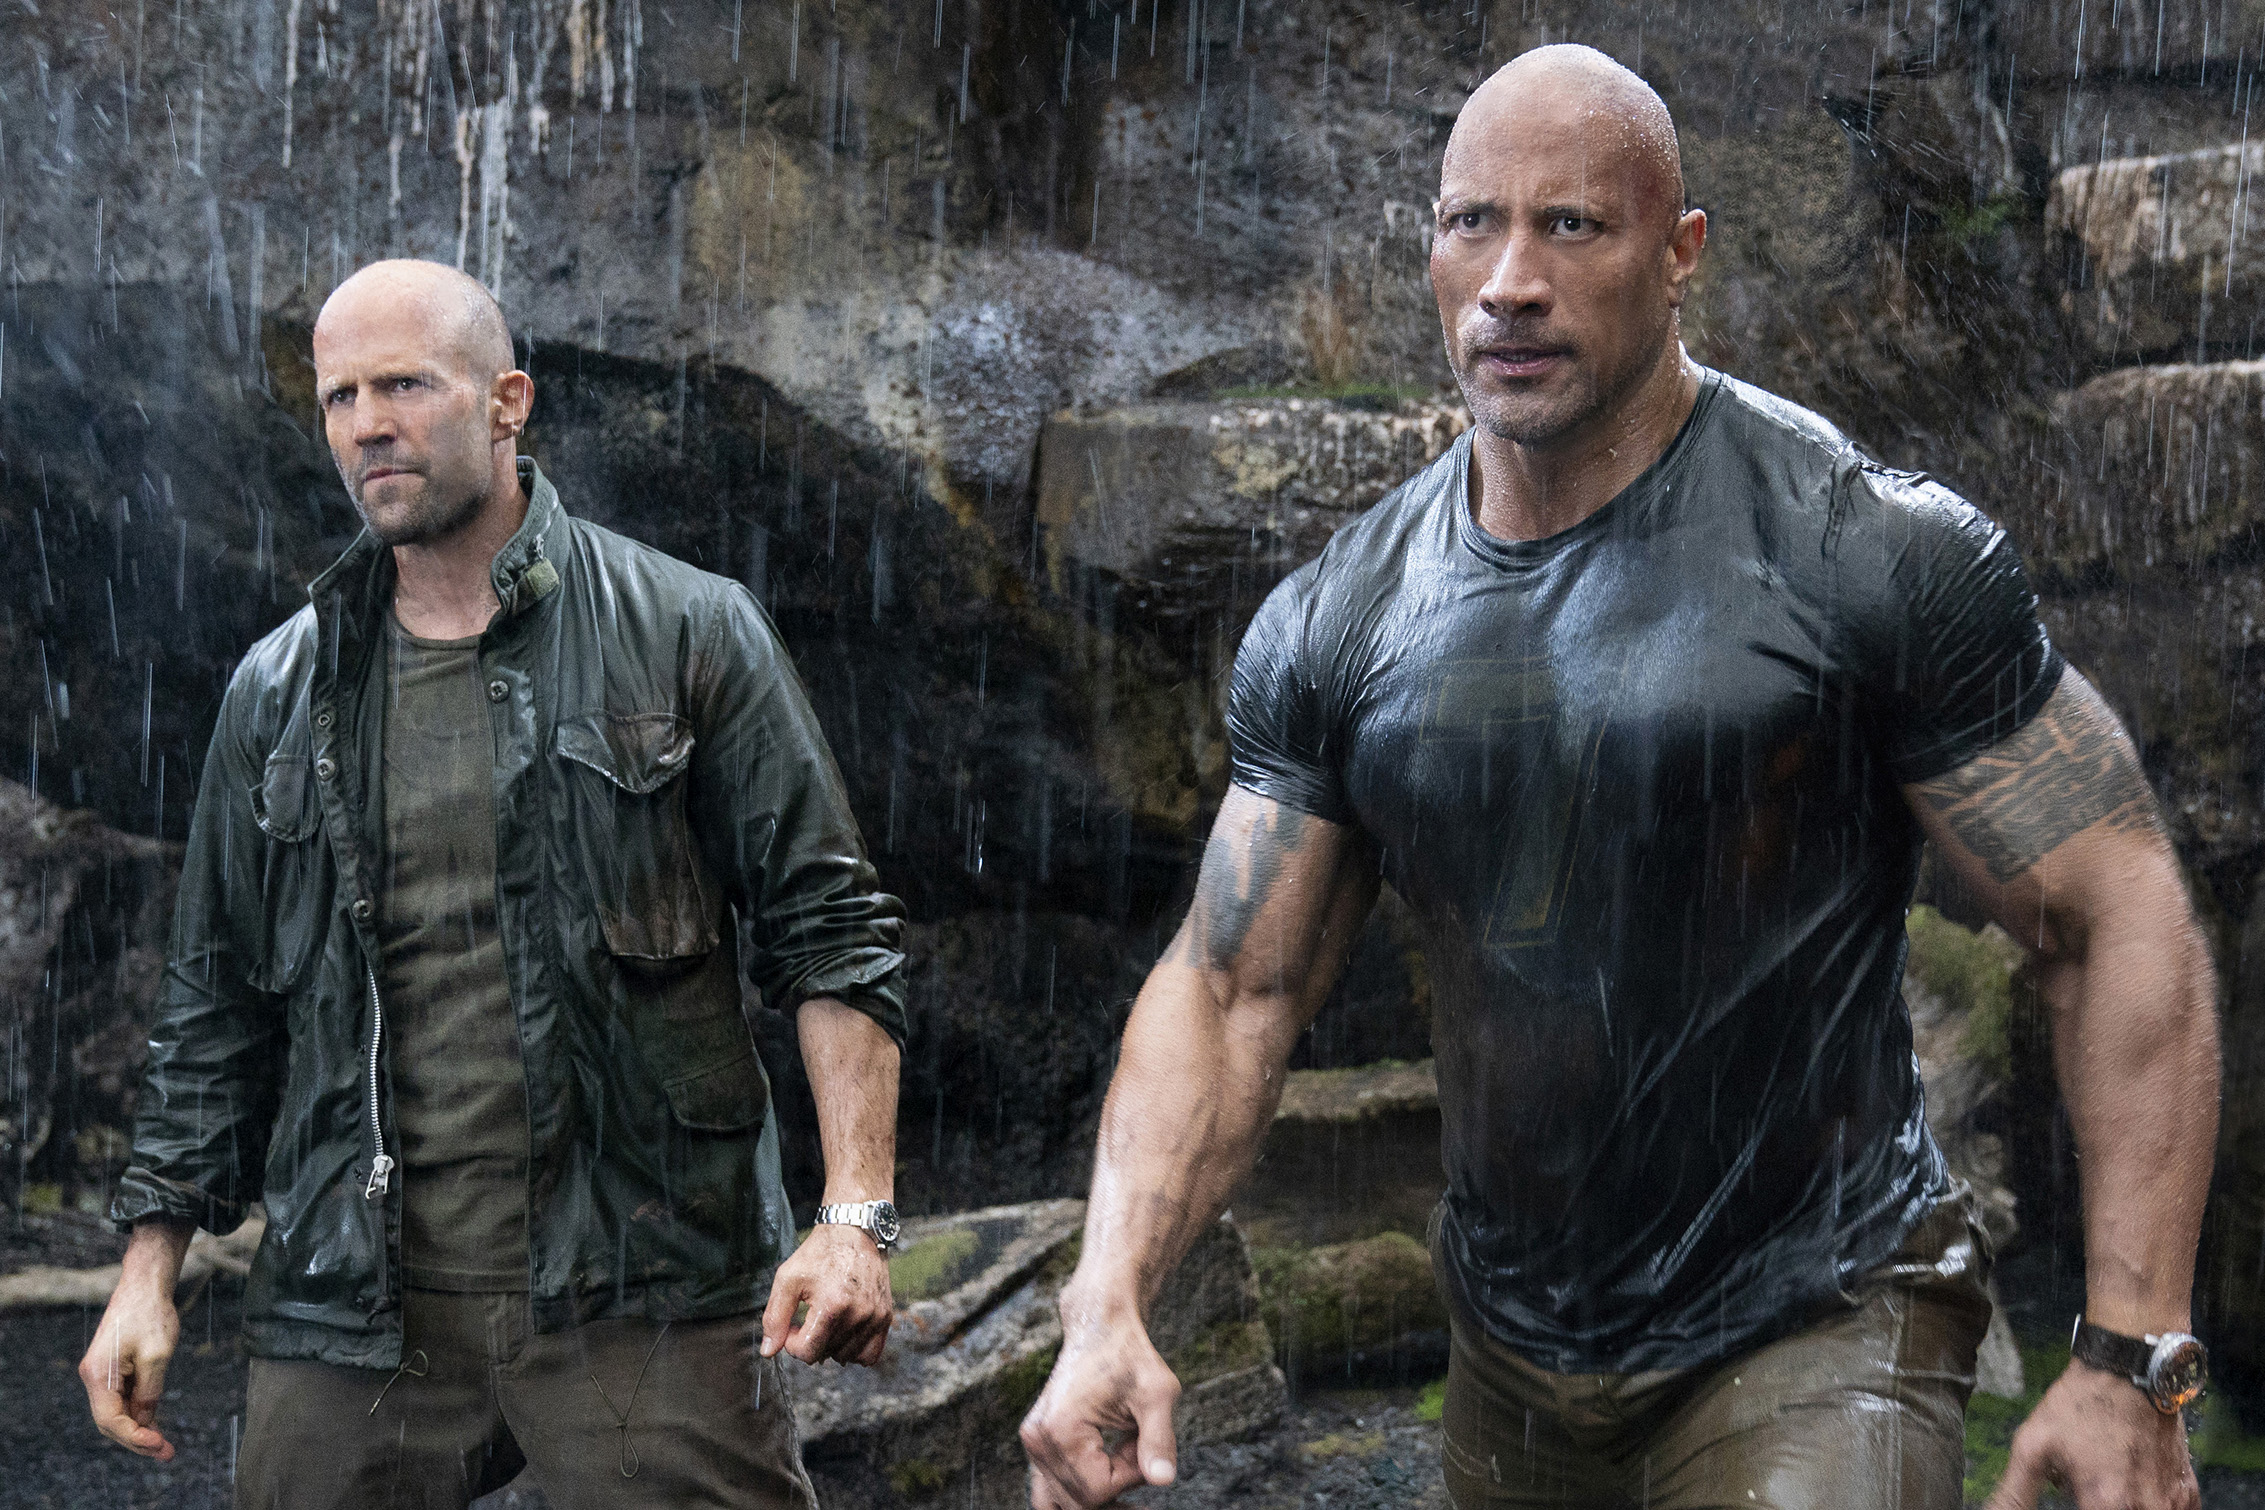 Jason Statham and Dwayne Johnson star in a scene from the movie